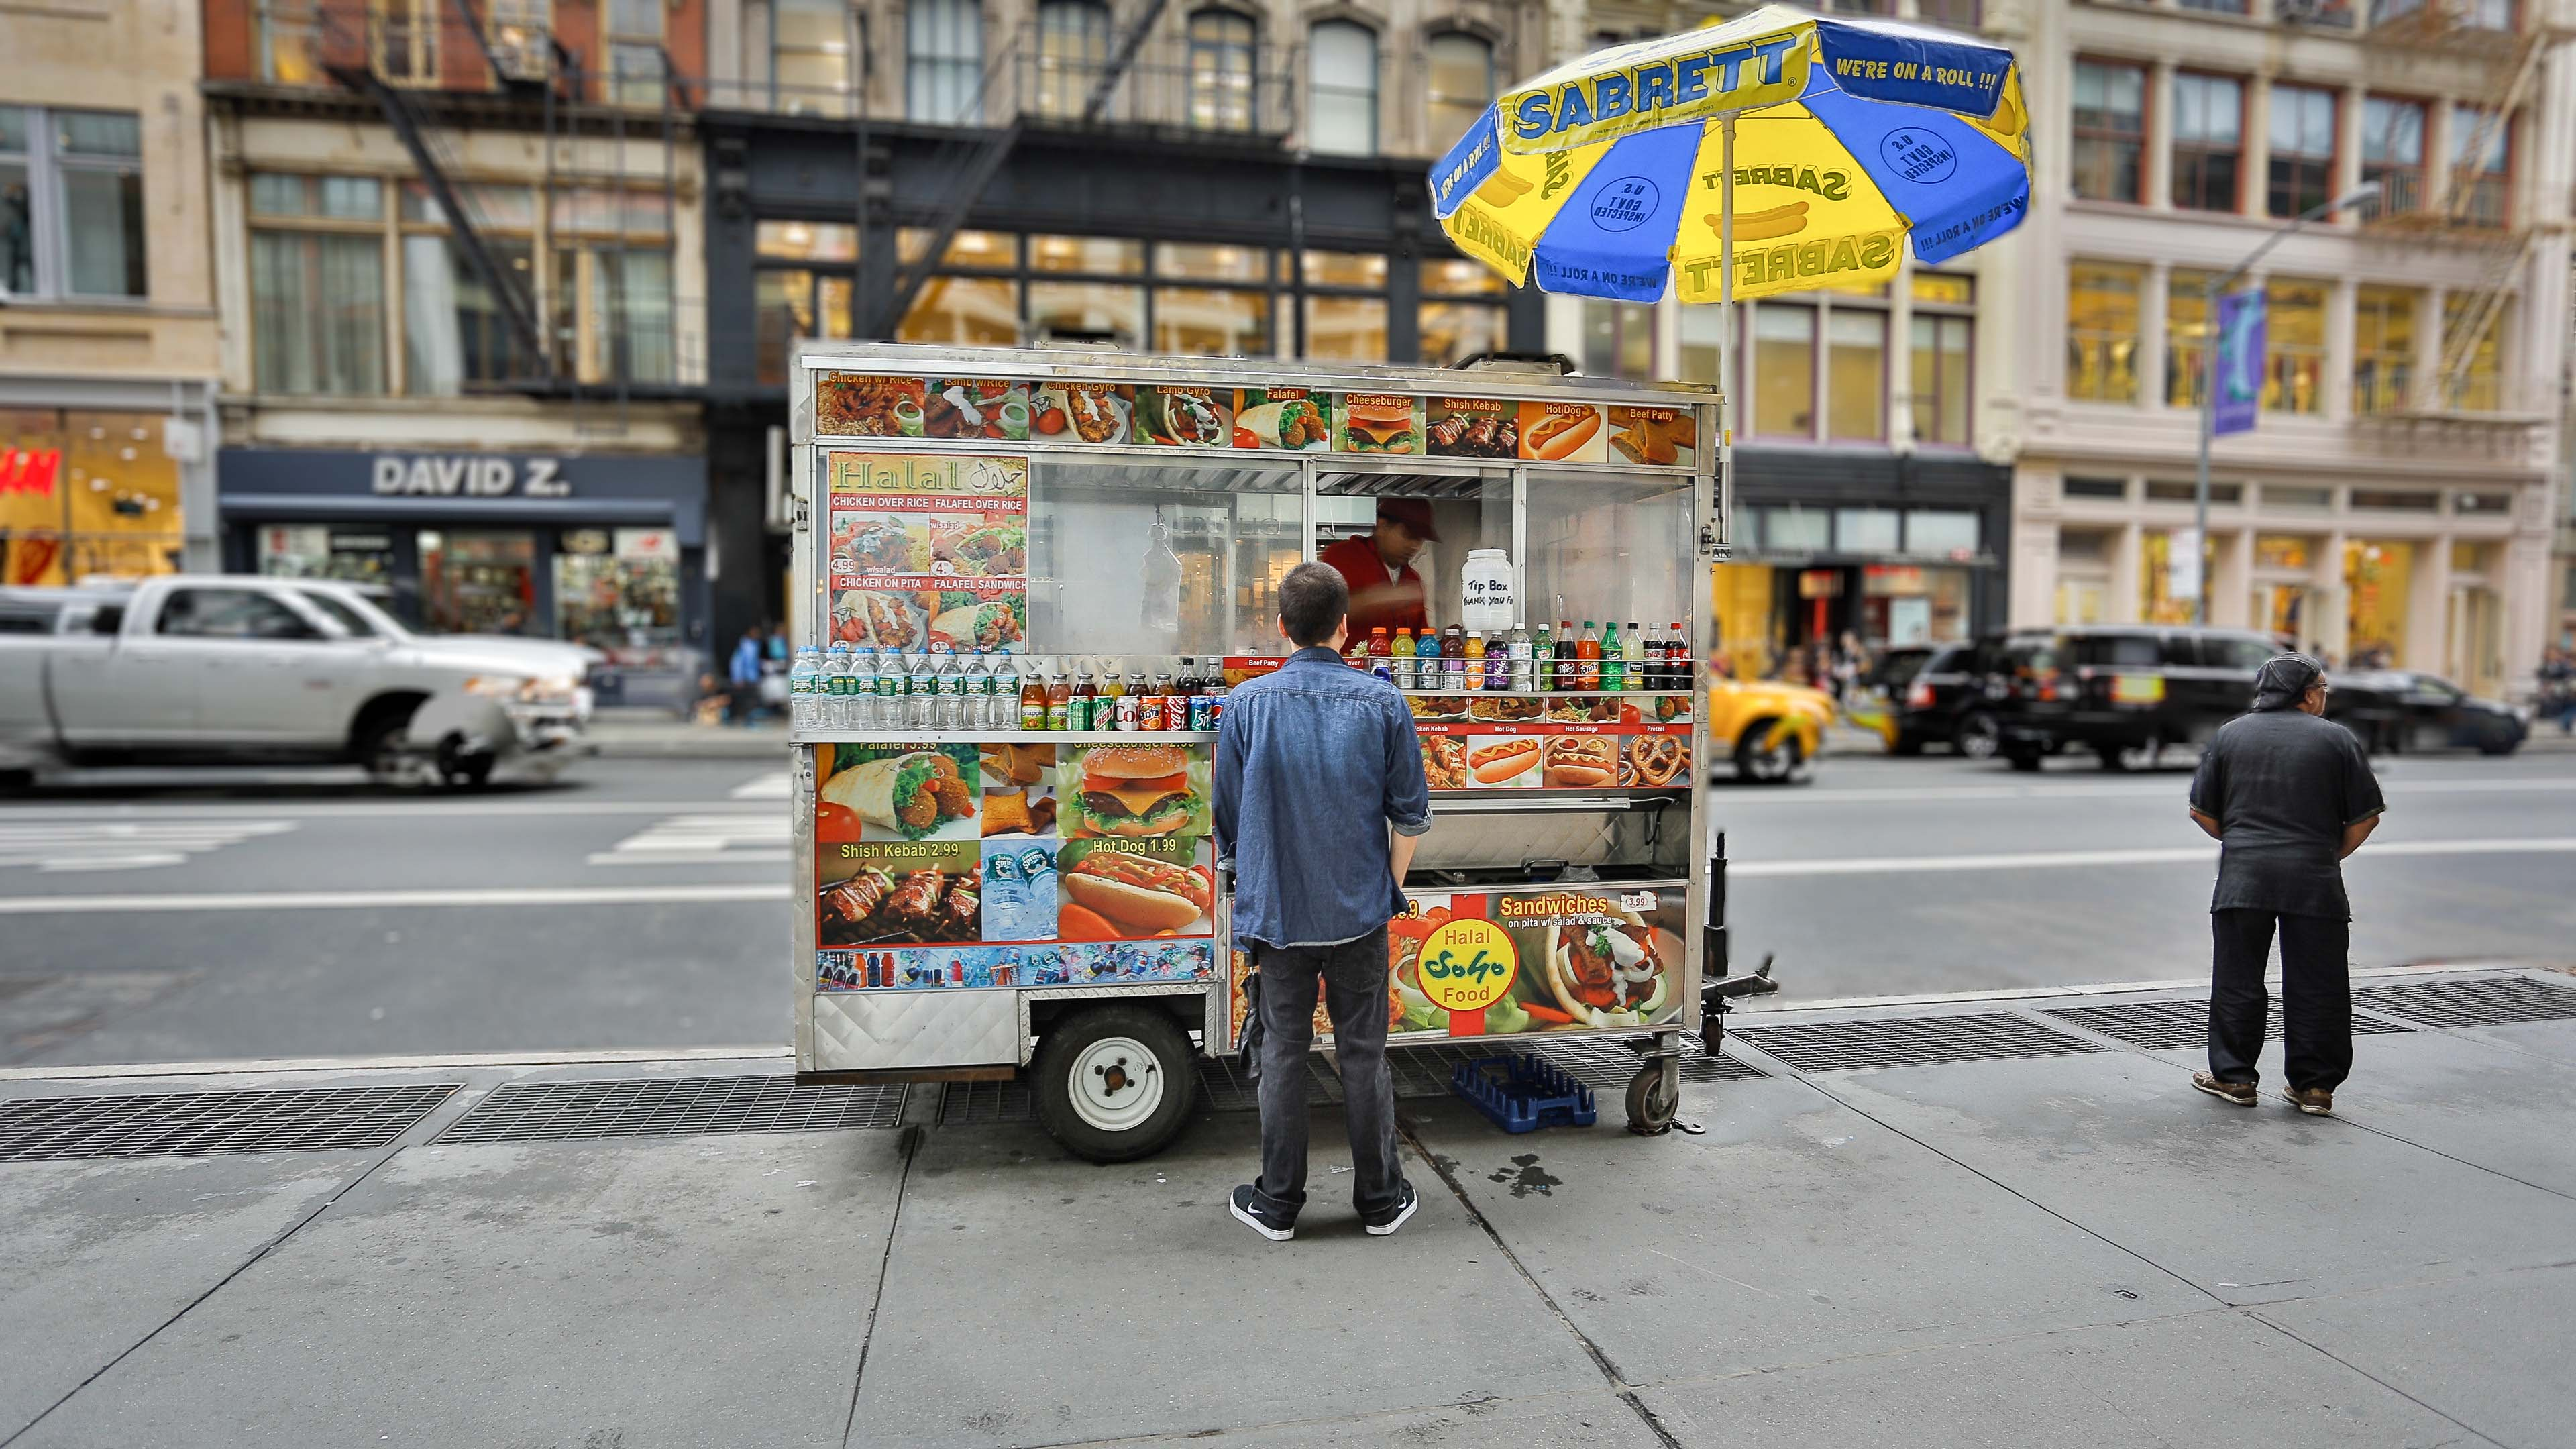 Snack-time on Broadway - Christian Cyfus